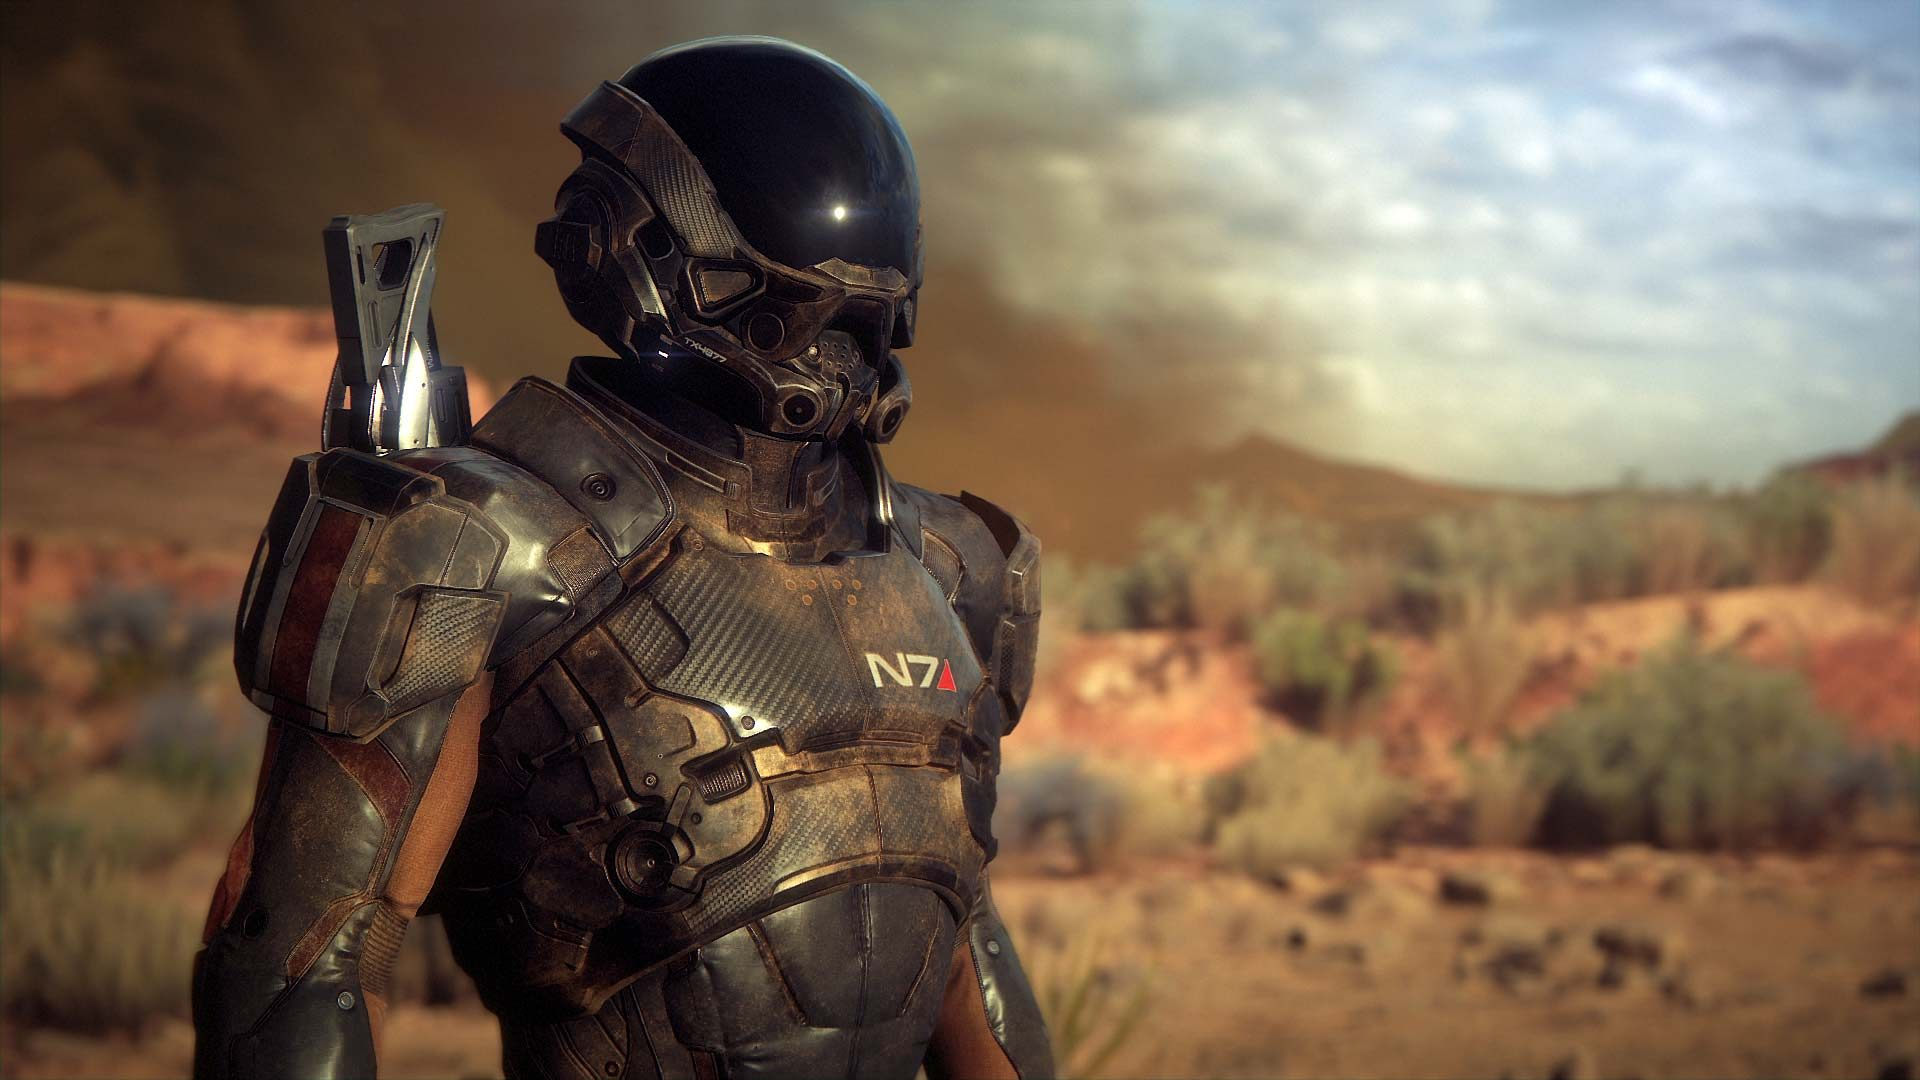 Zelda, Mass Effect and Horizon all struggle with introducing their trans characters